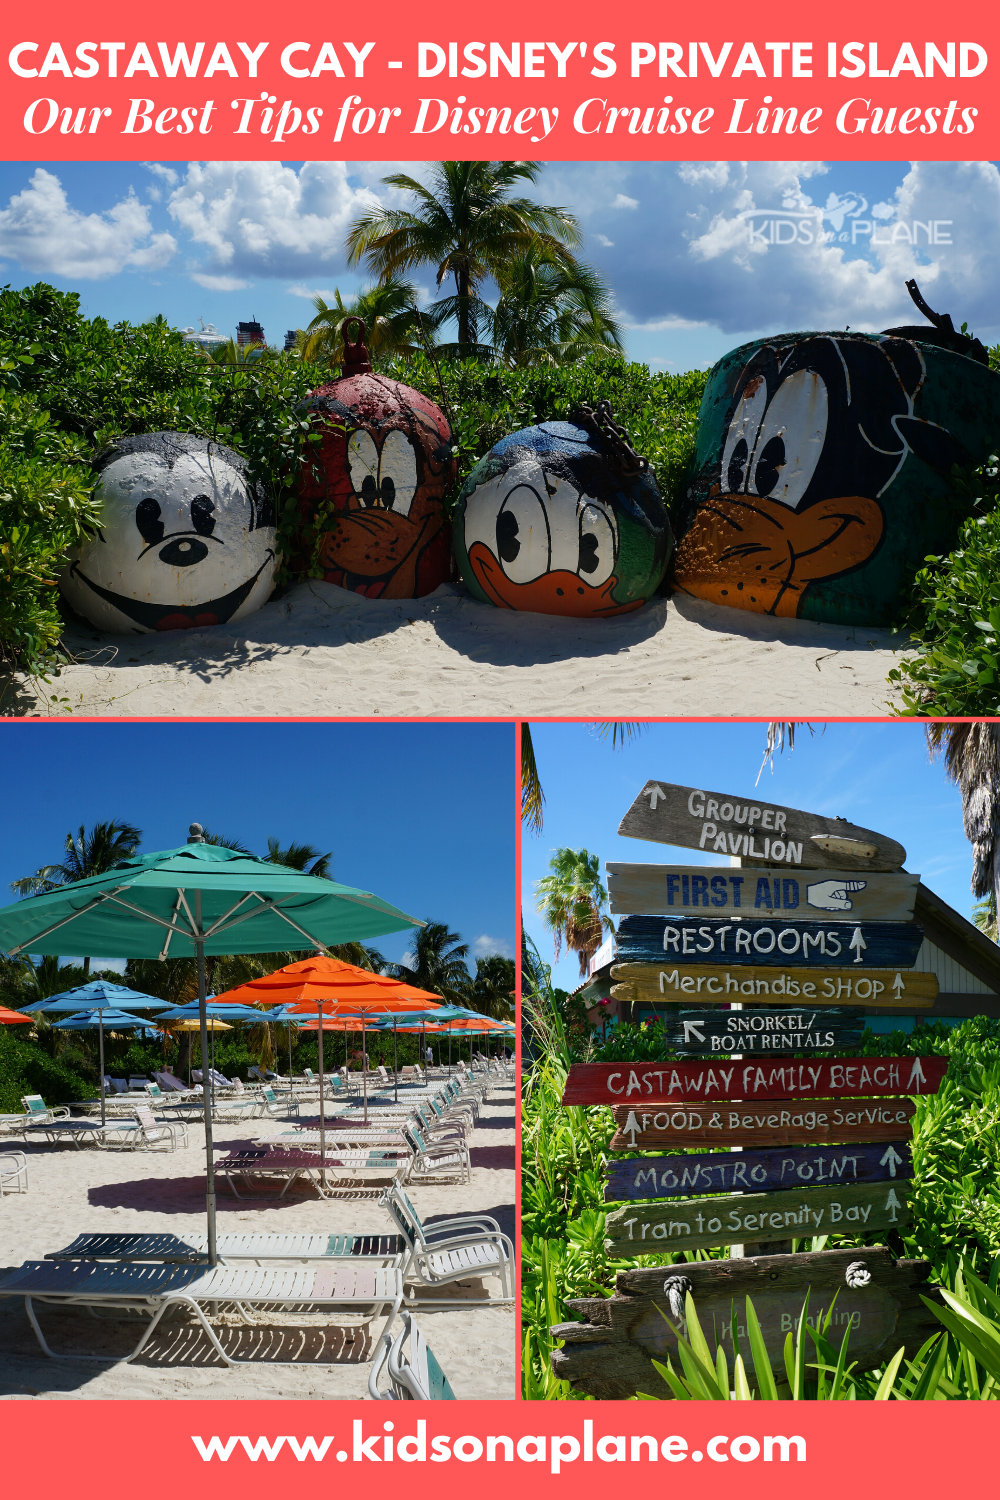 Best Castaway Cay Travel Tips for Disney Cruise Line Guests - What You Need to Know about Disneys Private Island in the Bahamas